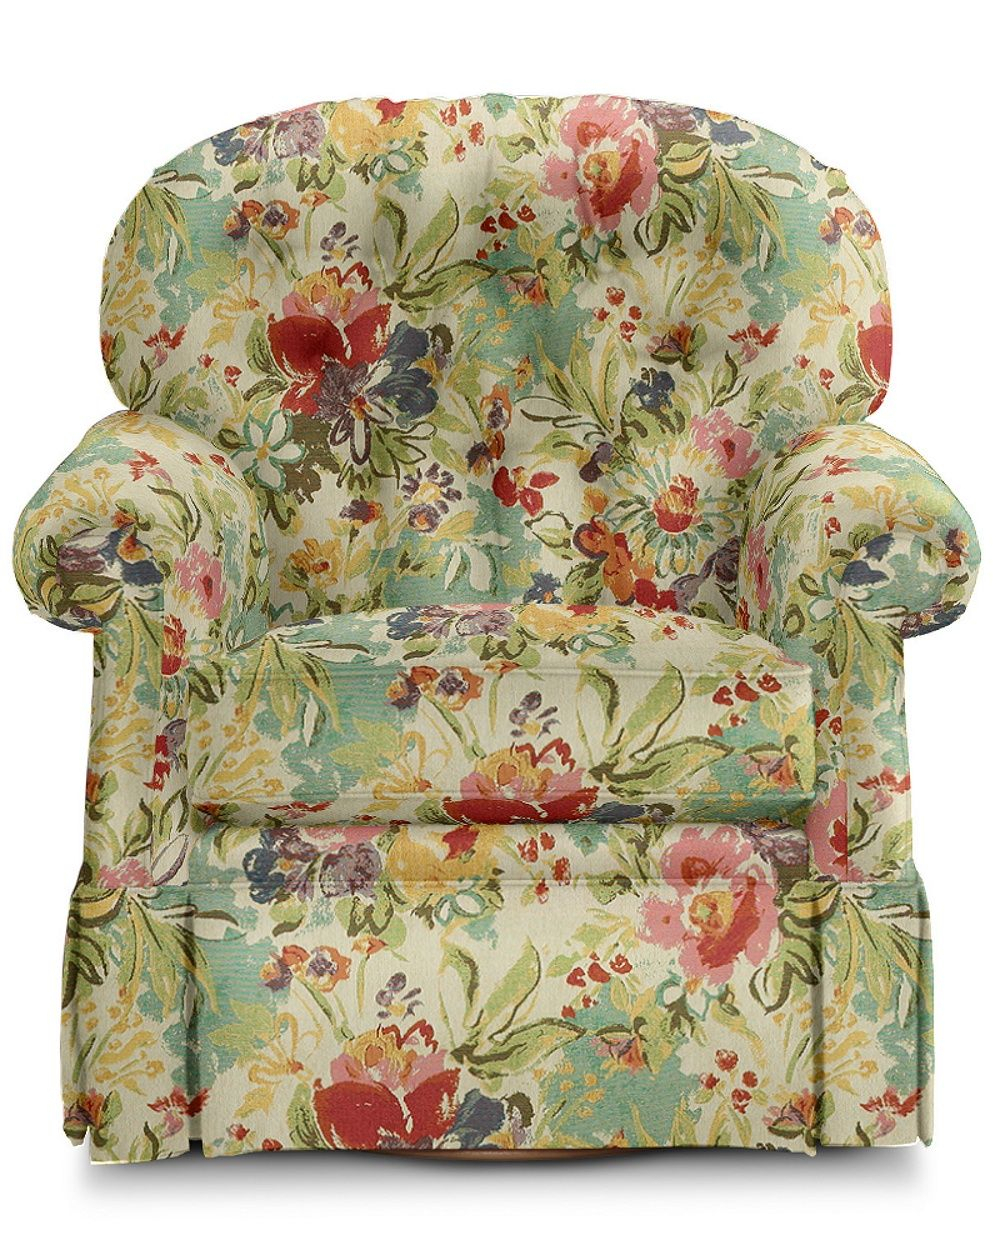 Small Is The New Big, And The Hampden Swivel Rocker Is Proof Regarding Ethel Country White Rocking Chairs (View 16 of 20)